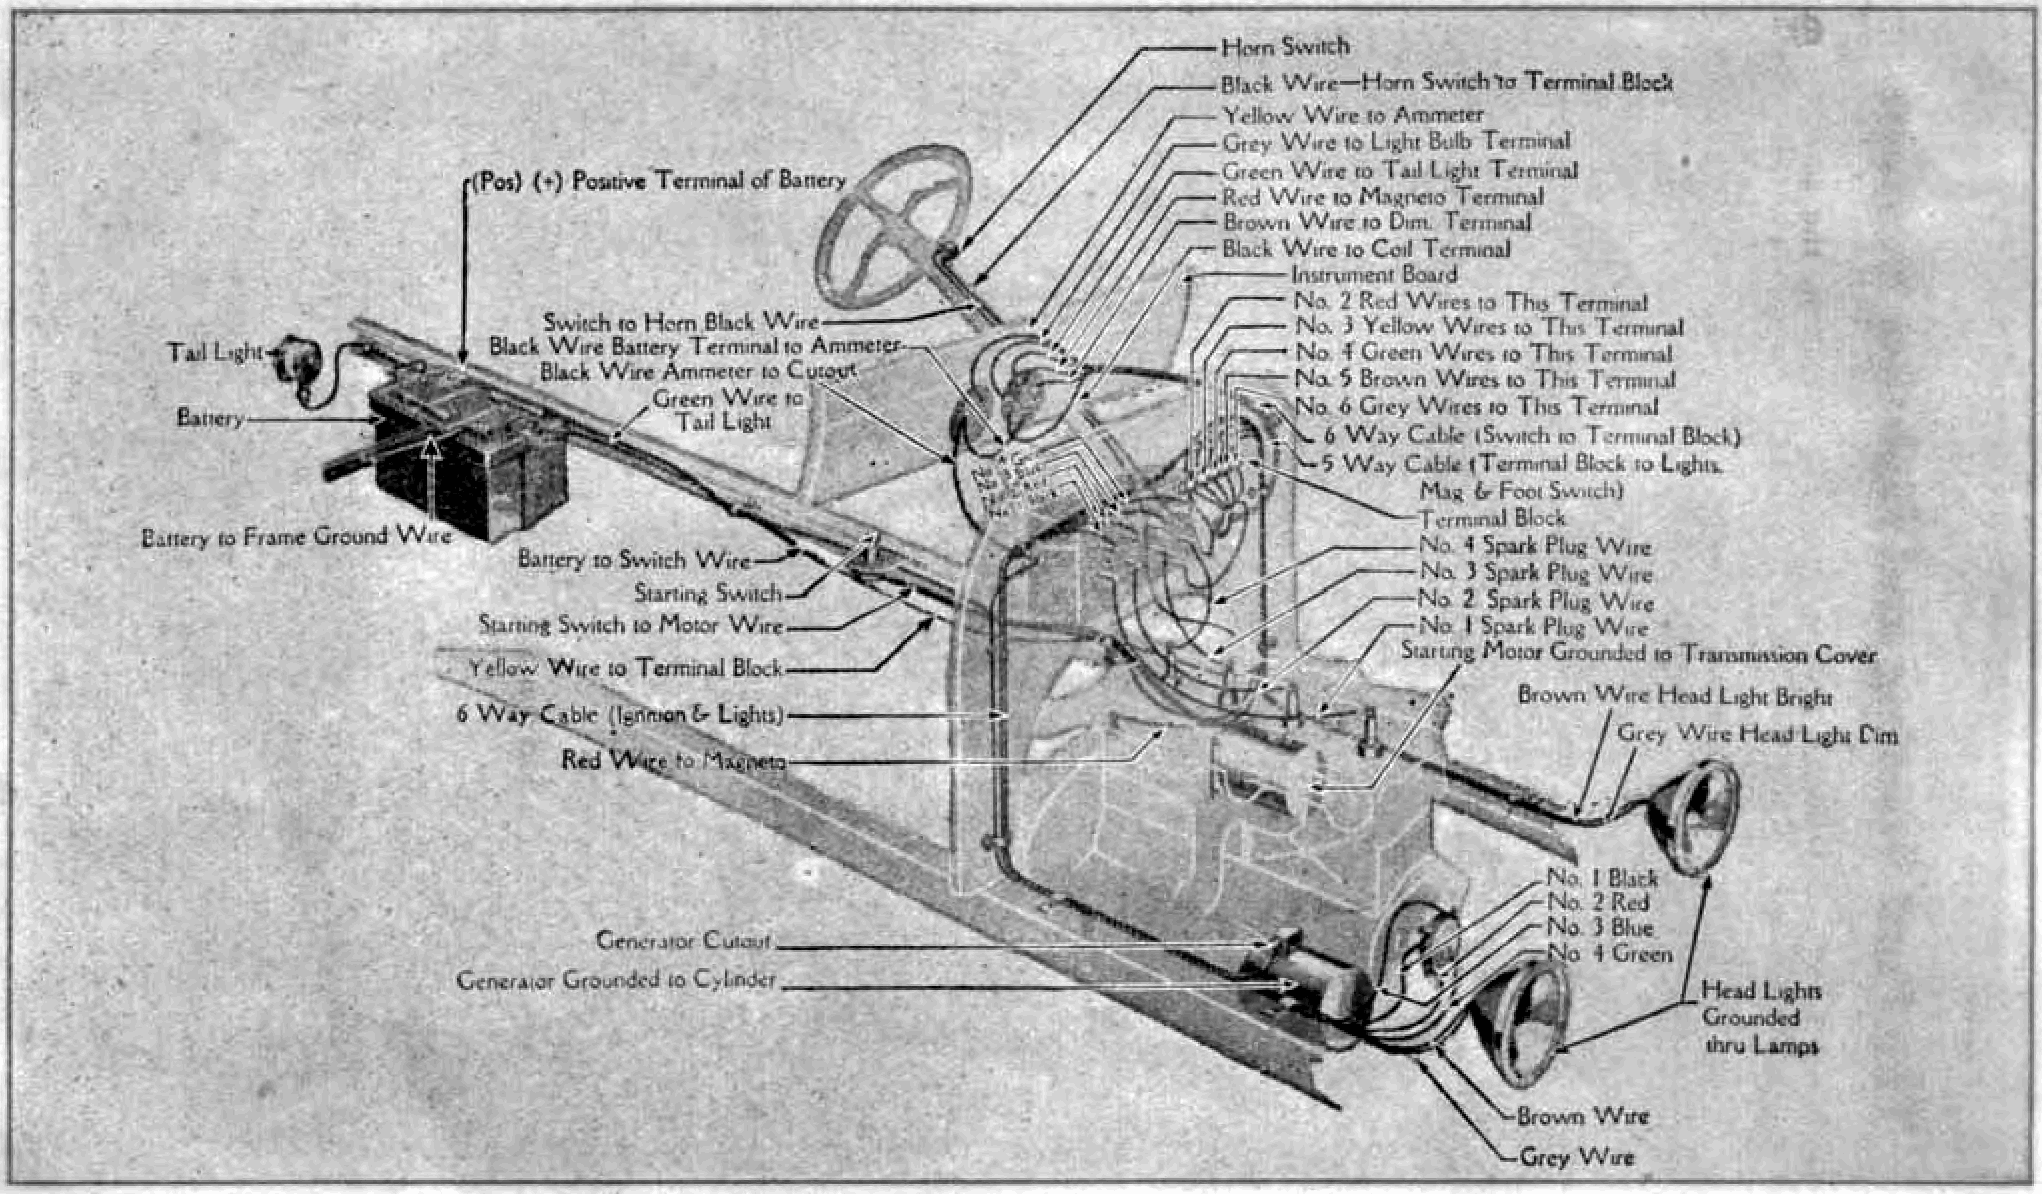 file ford model t 1919 d055 wiring diagram of cars equipped a file ford model t 1919 d055 wiring diagram of cars equipped a starter